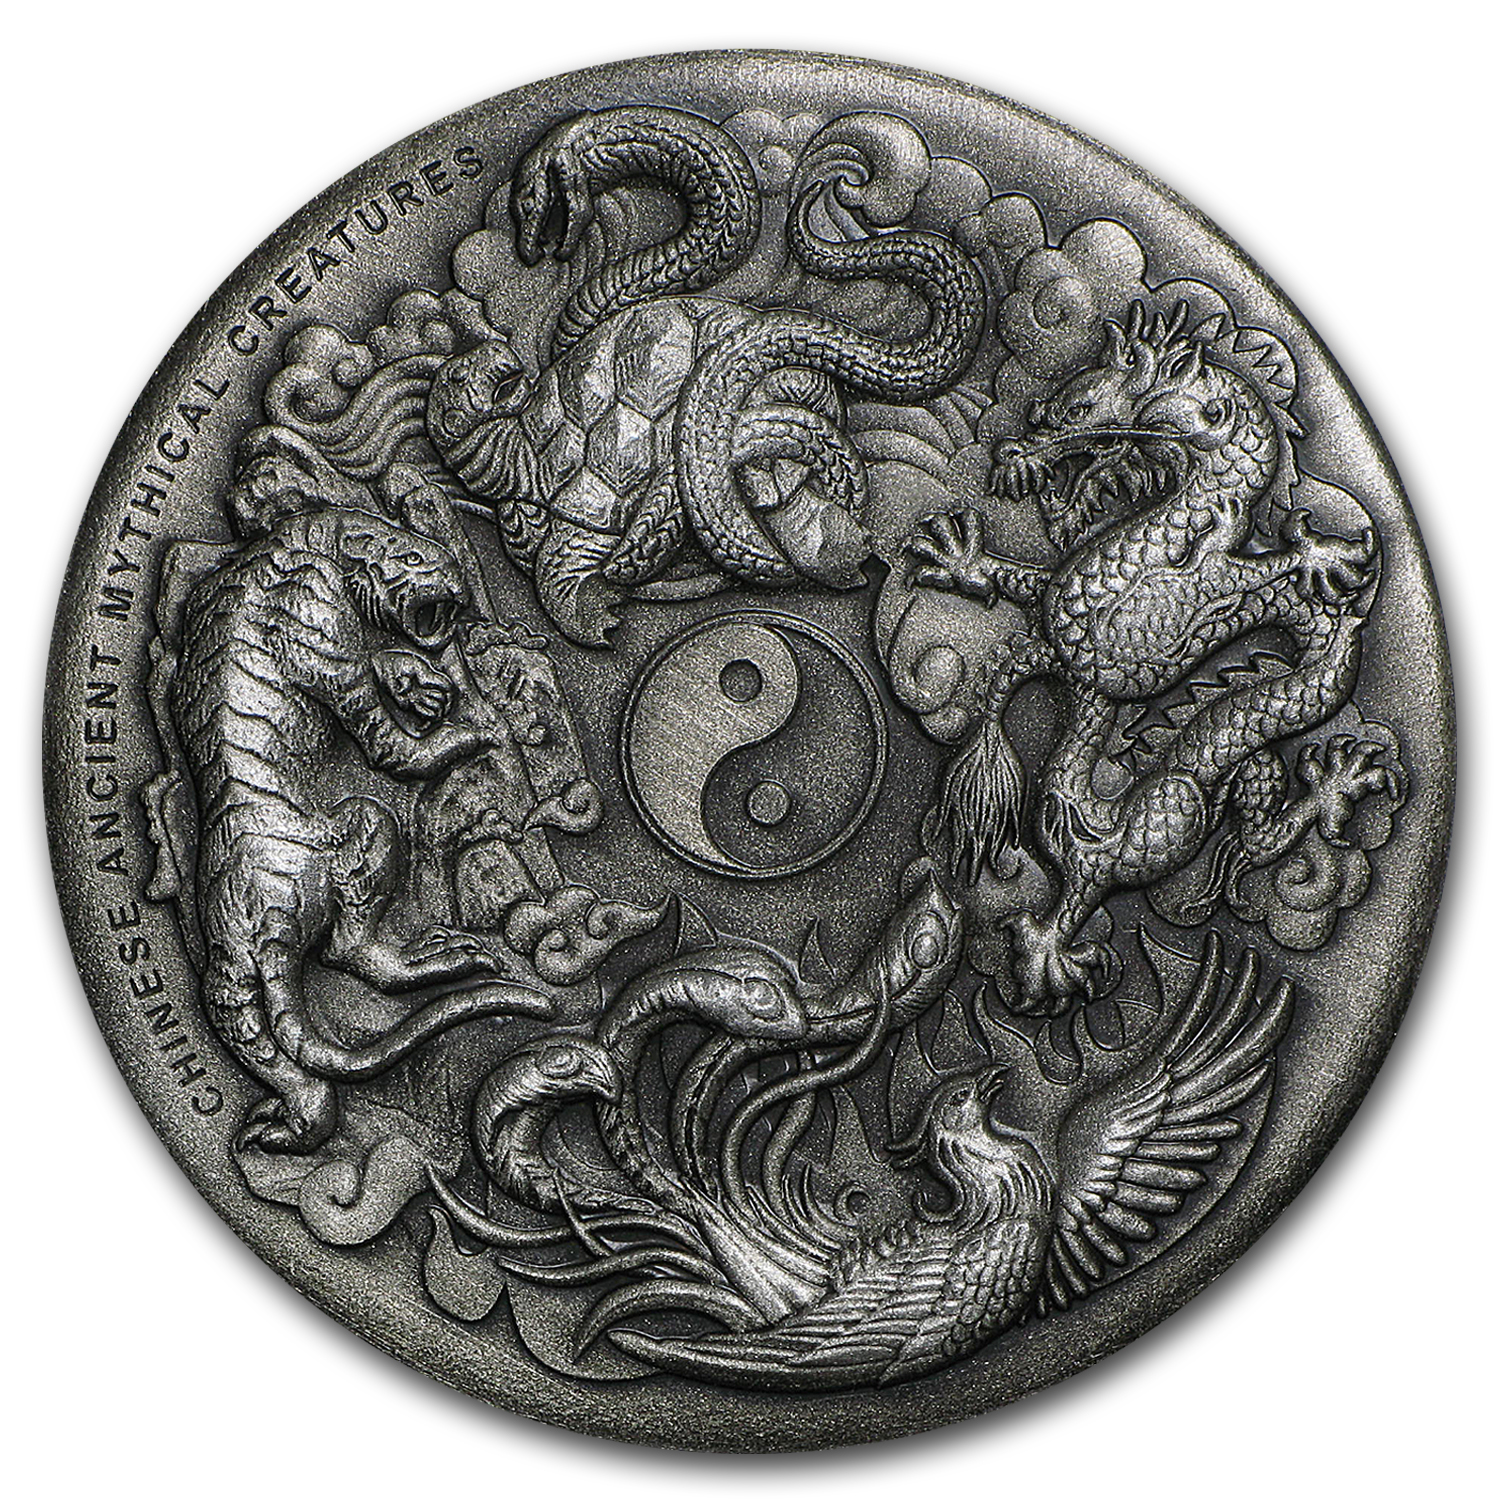 2016 Australia 2 oz Silver Mythical Creatures Antique High Relief